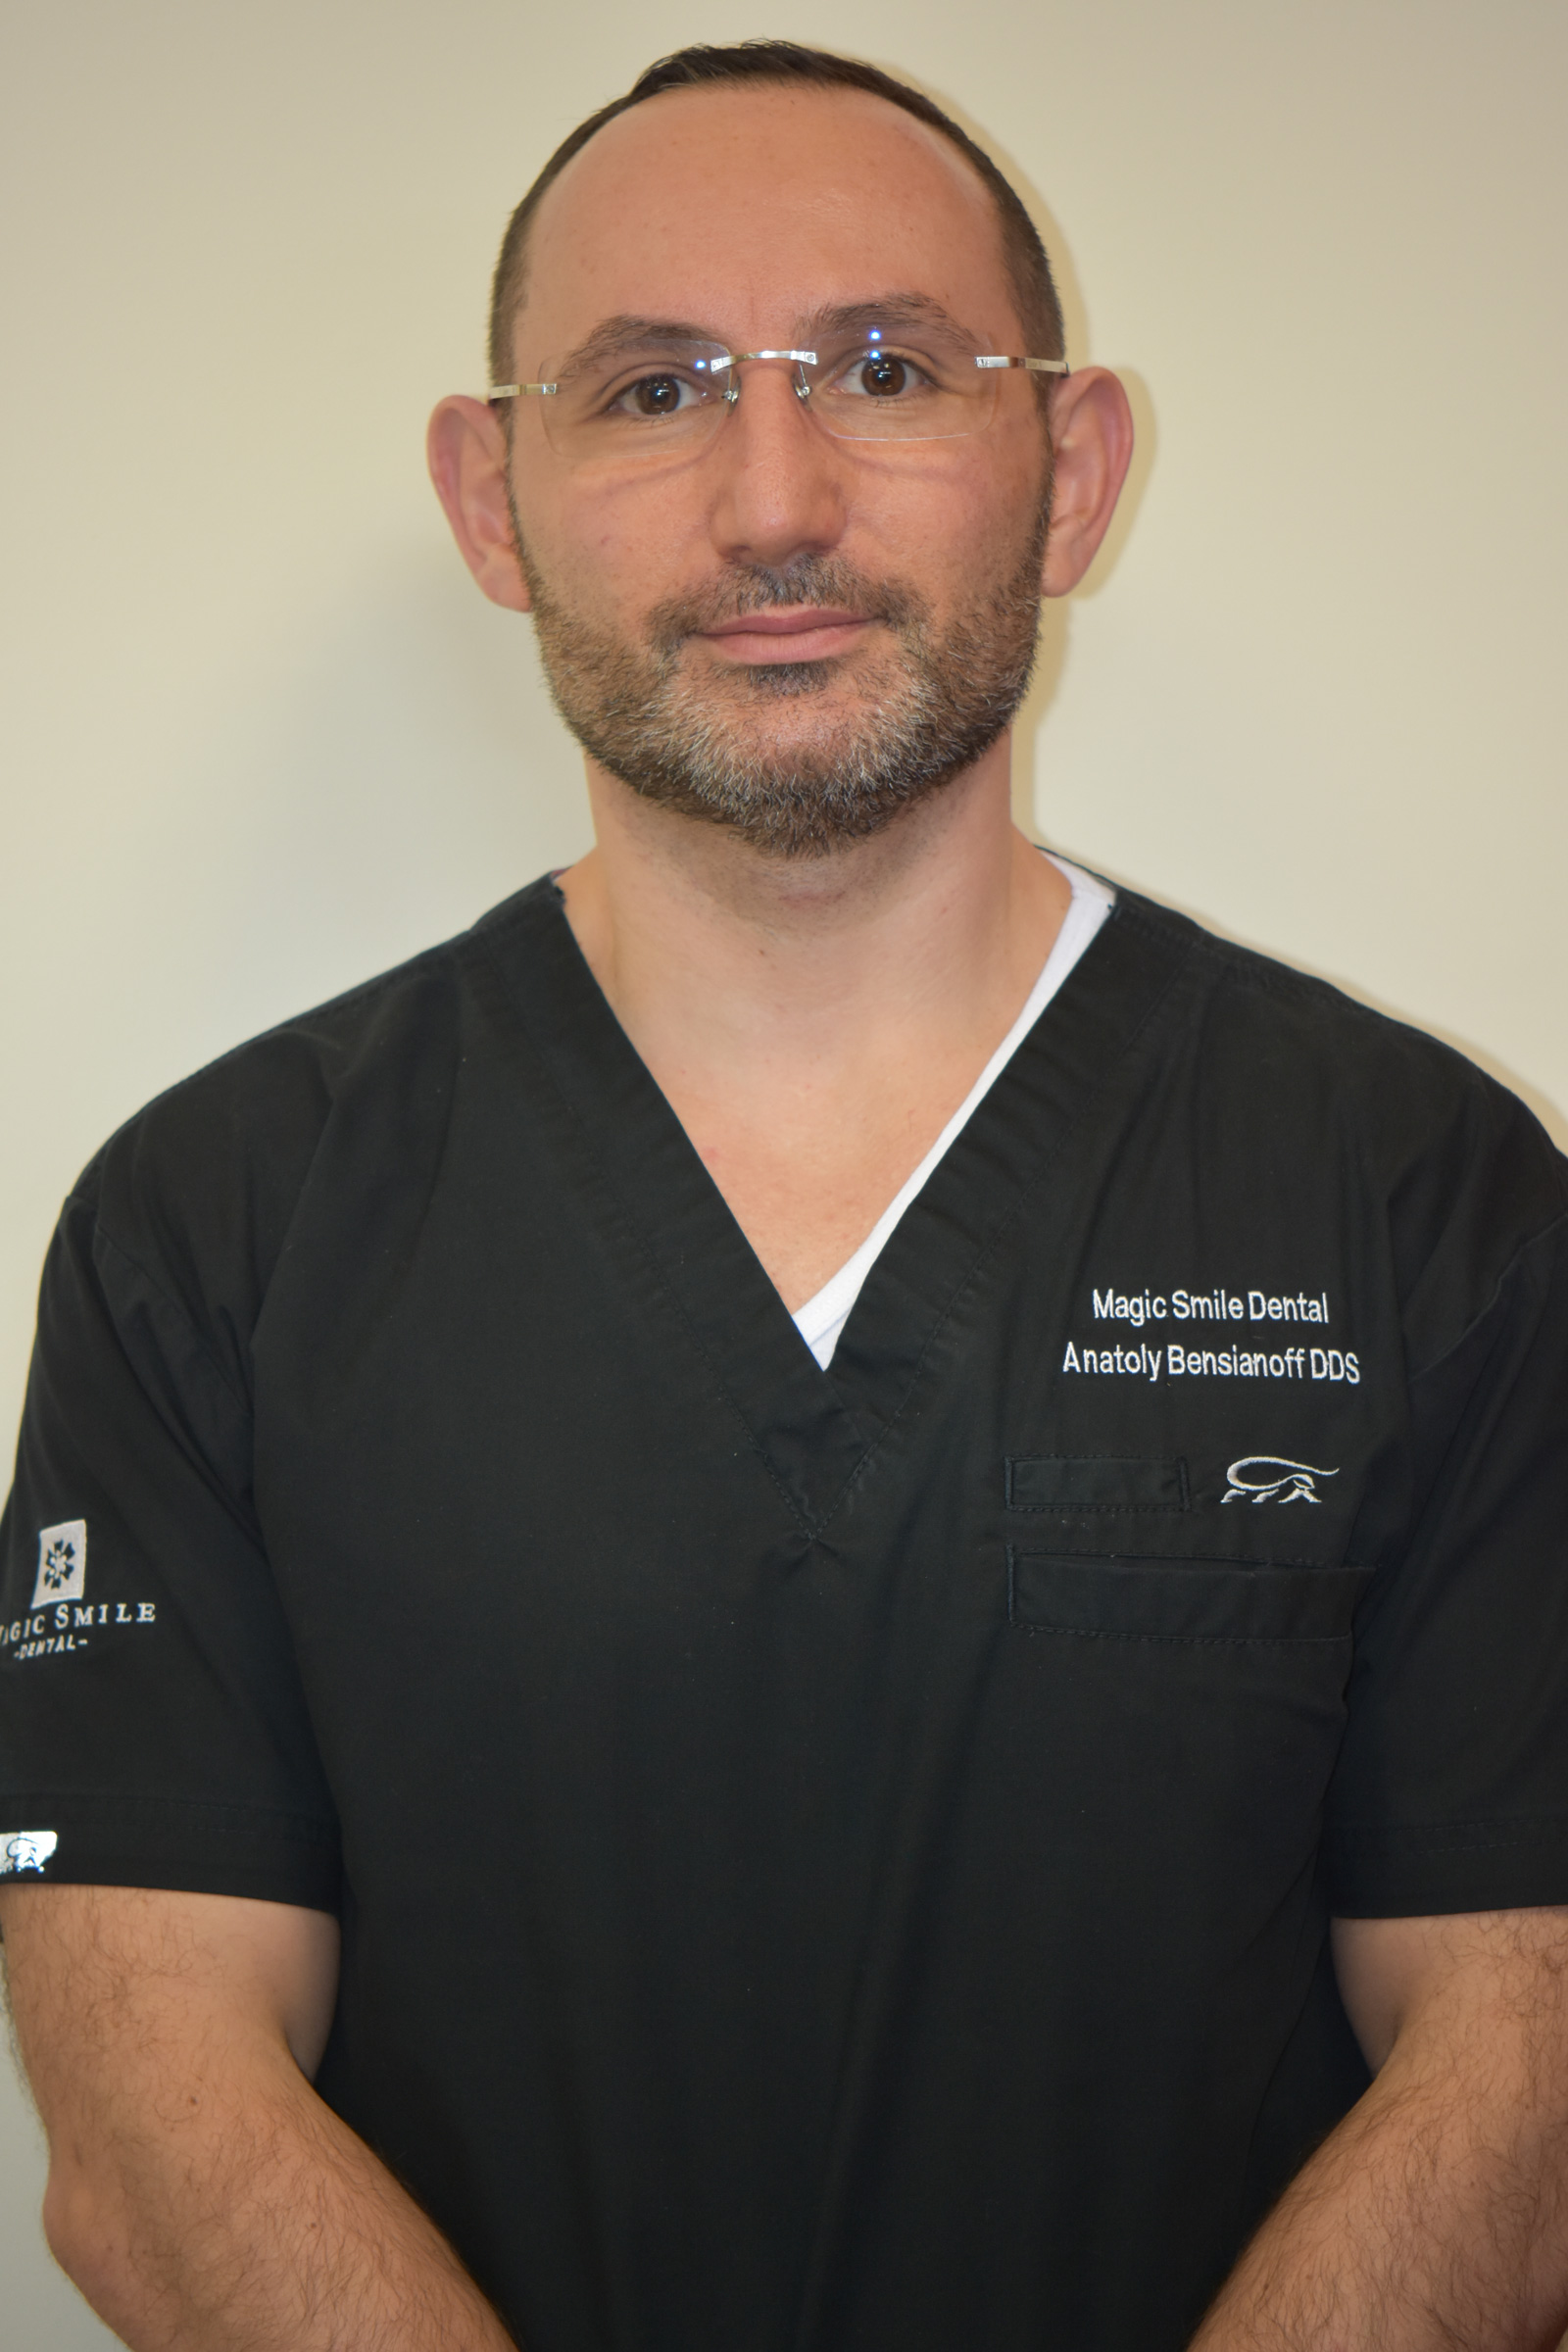 Anatoly Bensianoff DDS - Dr. Anatoly Bensianoff earned his Doctor of Dental Surgery Degree from the NYU College of Dentistry in 2001 and completed his residency at Staten Island Hospital in 2001. Drawn to dentistry after volunteering as a resident's assistant in a dental clinic, Dr. Bensianoff loves to help patients alleviate pain and educate them, giving them the tools they need to maintain a healthy mouth for their lifetime. Learn more about our practice